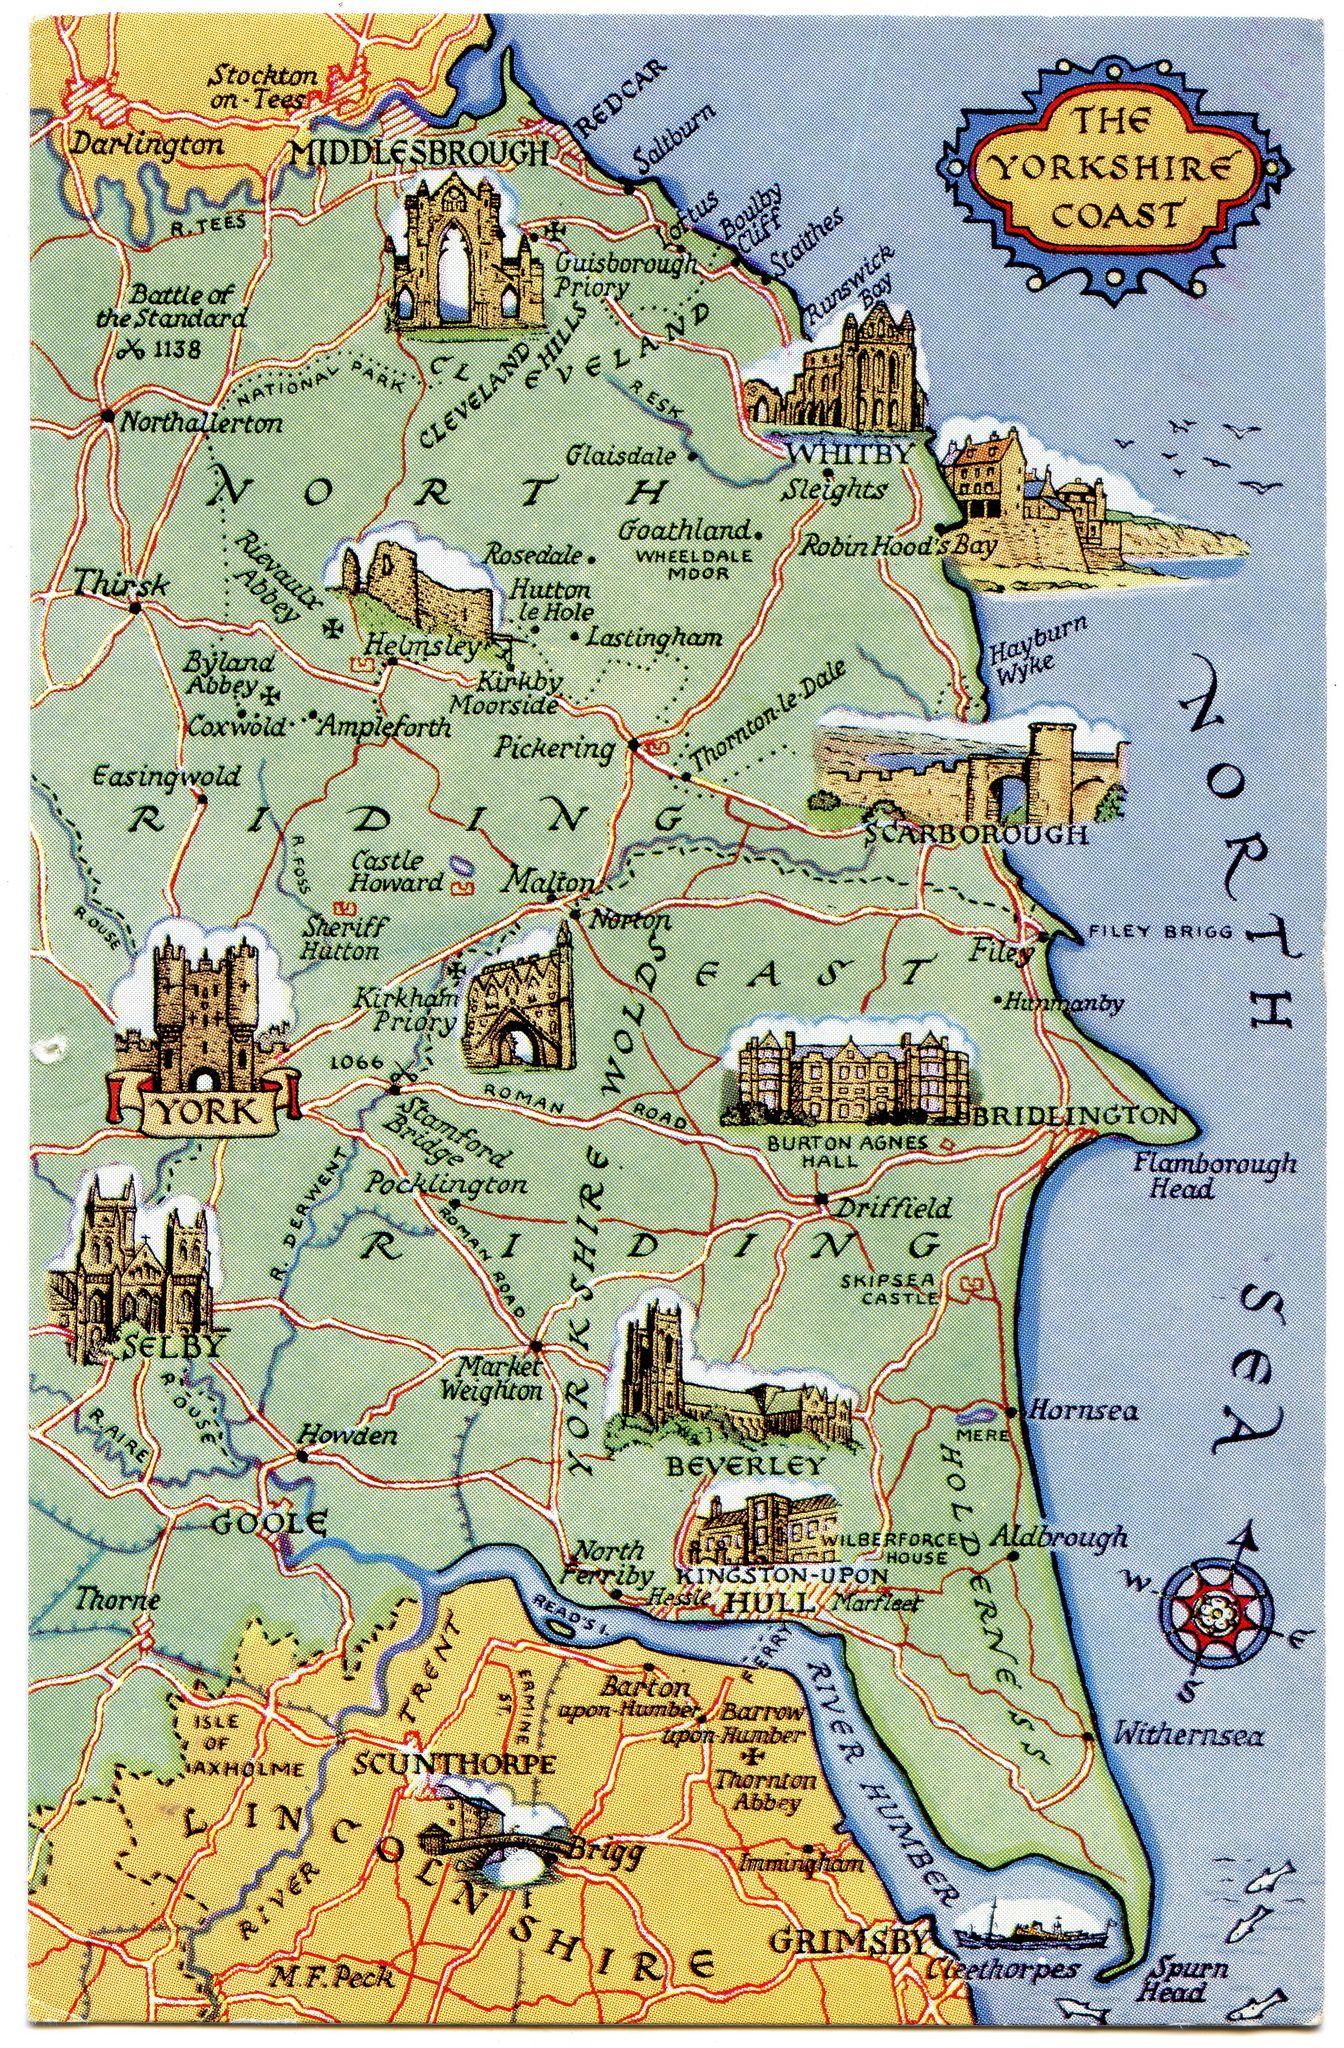 Map Of England Showing Yorkshire.Postcard Map Of The Yorkshire Coast In 2019 Leeds Yorkshire Uk